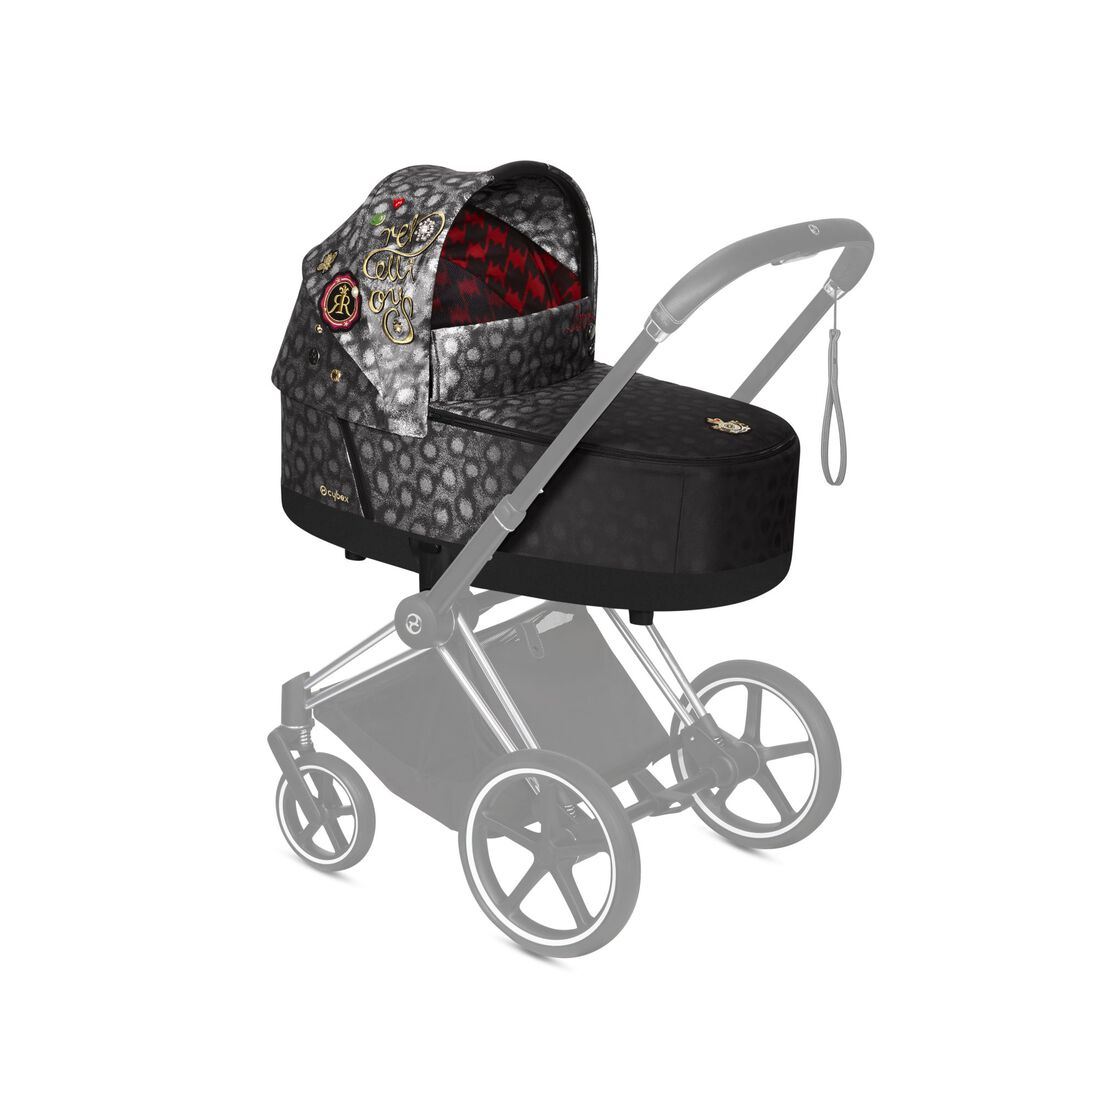 CYBEX Priam Lux Carry Cot - Rebellious in Rebellious large Bild 4